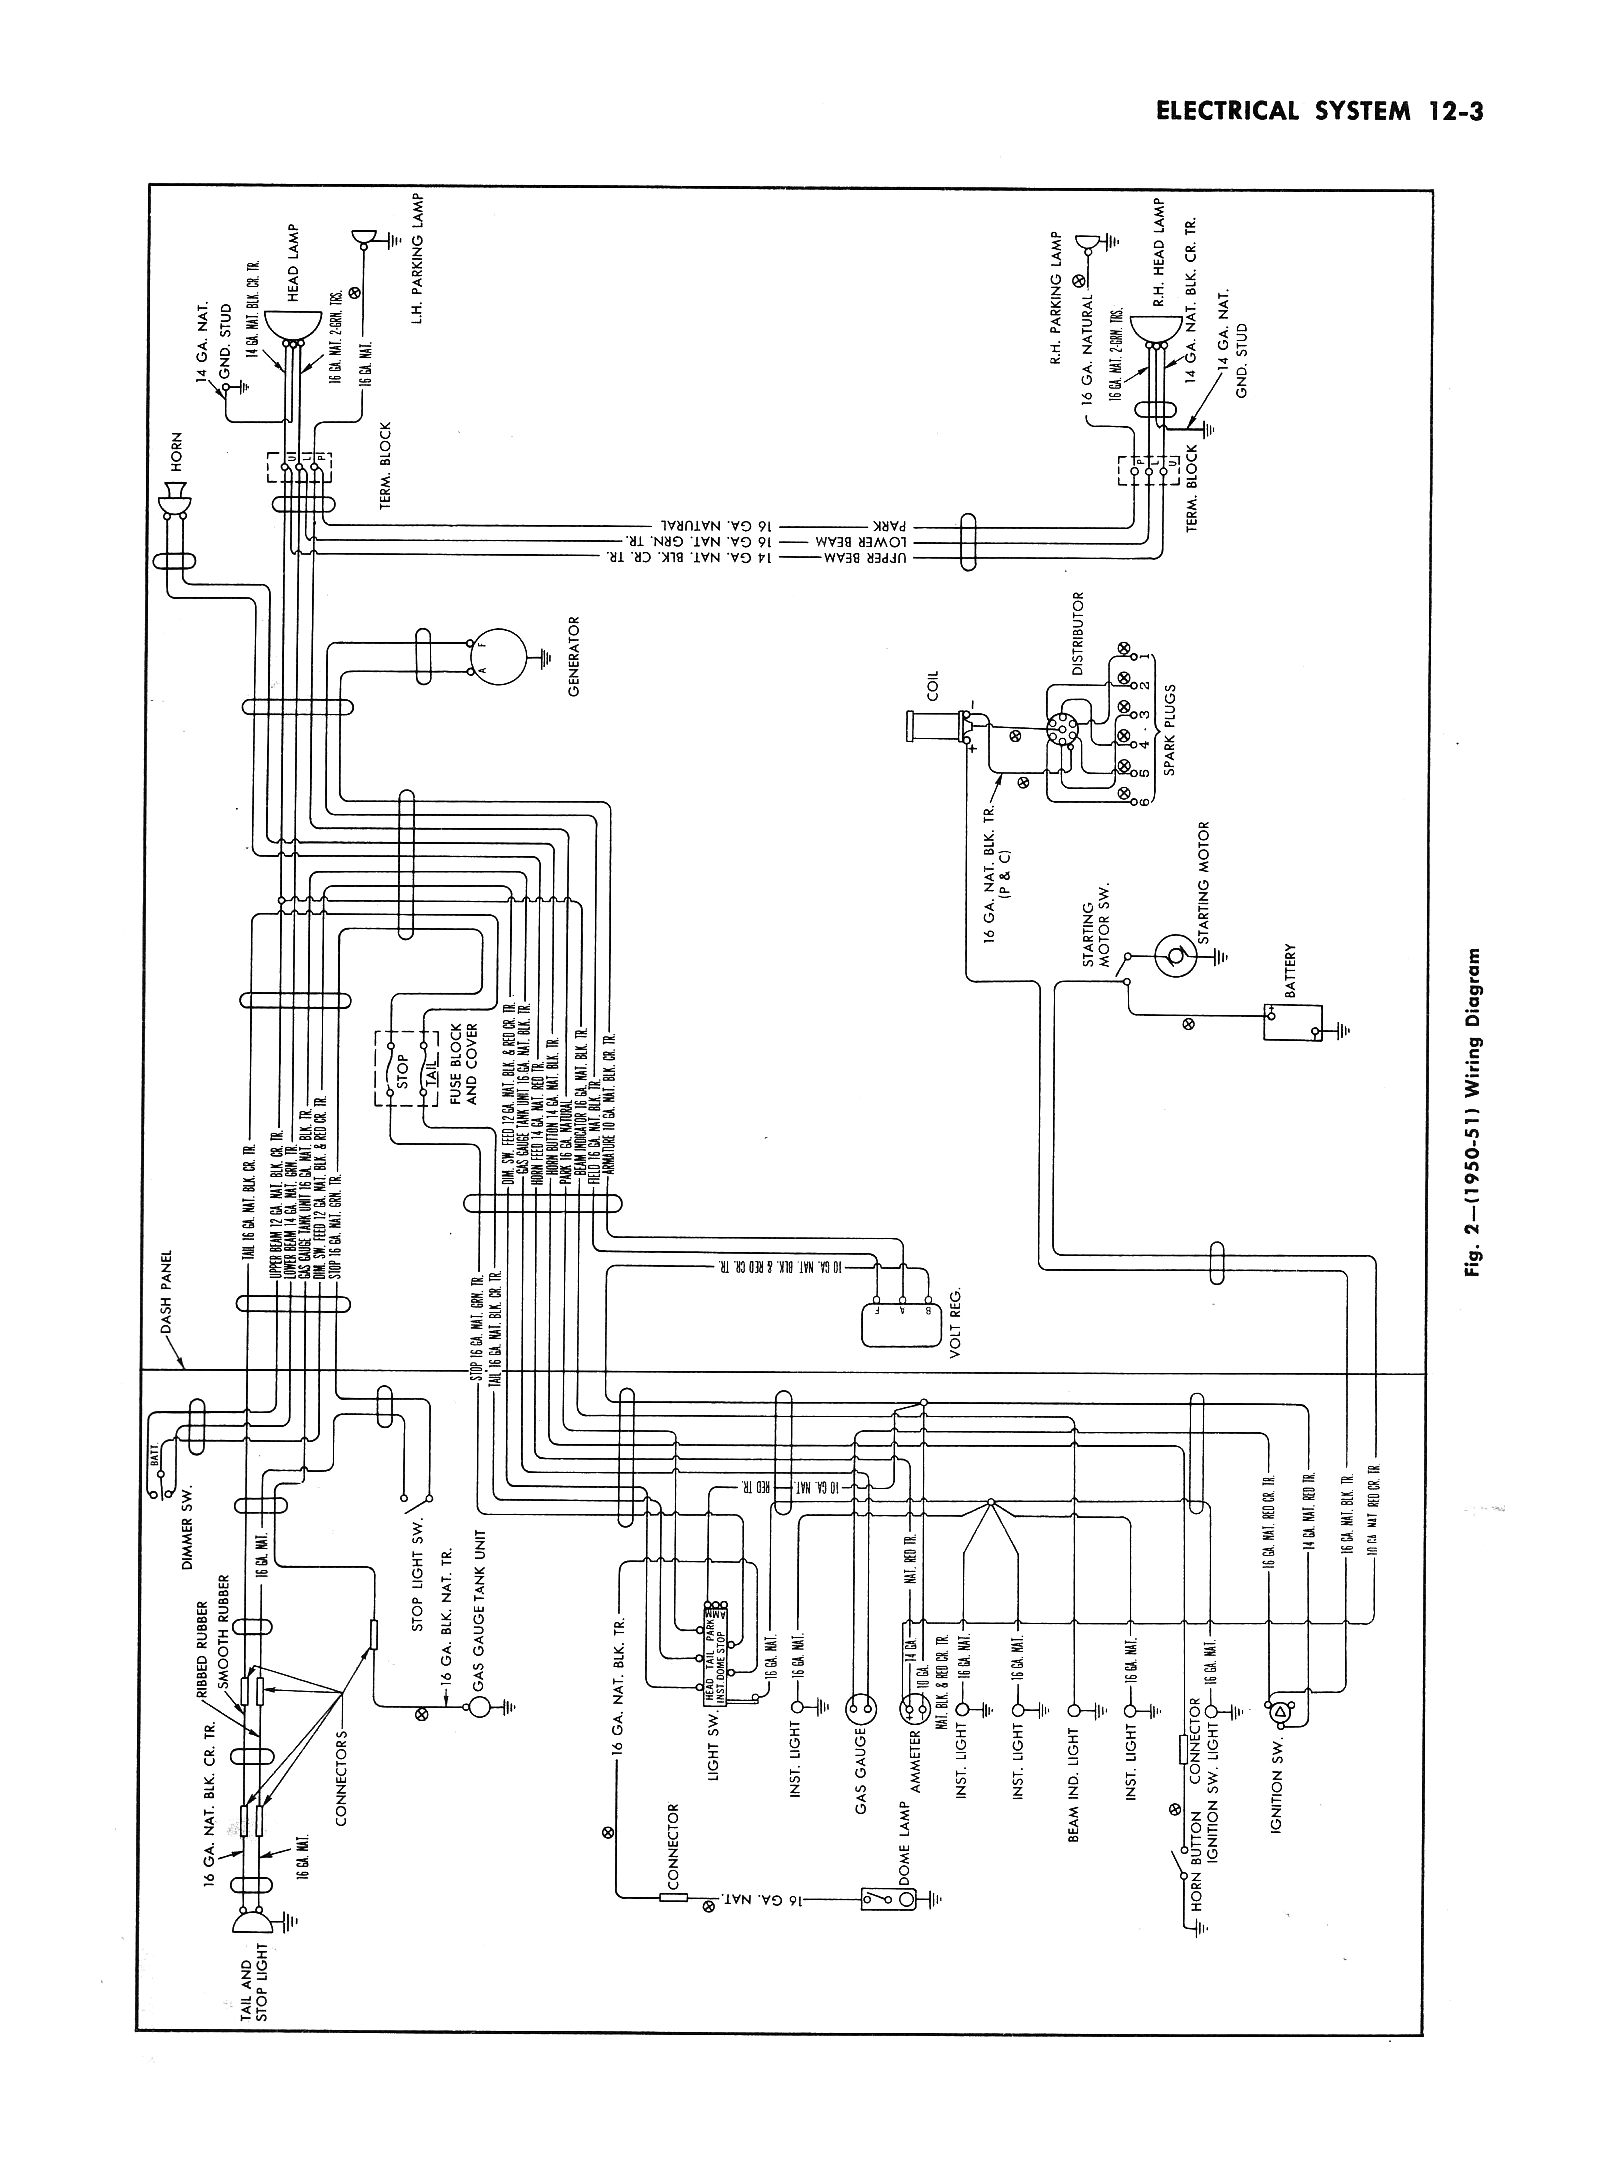 1966 Ford F100 Horn Diagram Trusted Wiring 1960 Truck Diagrams Get Free Image About